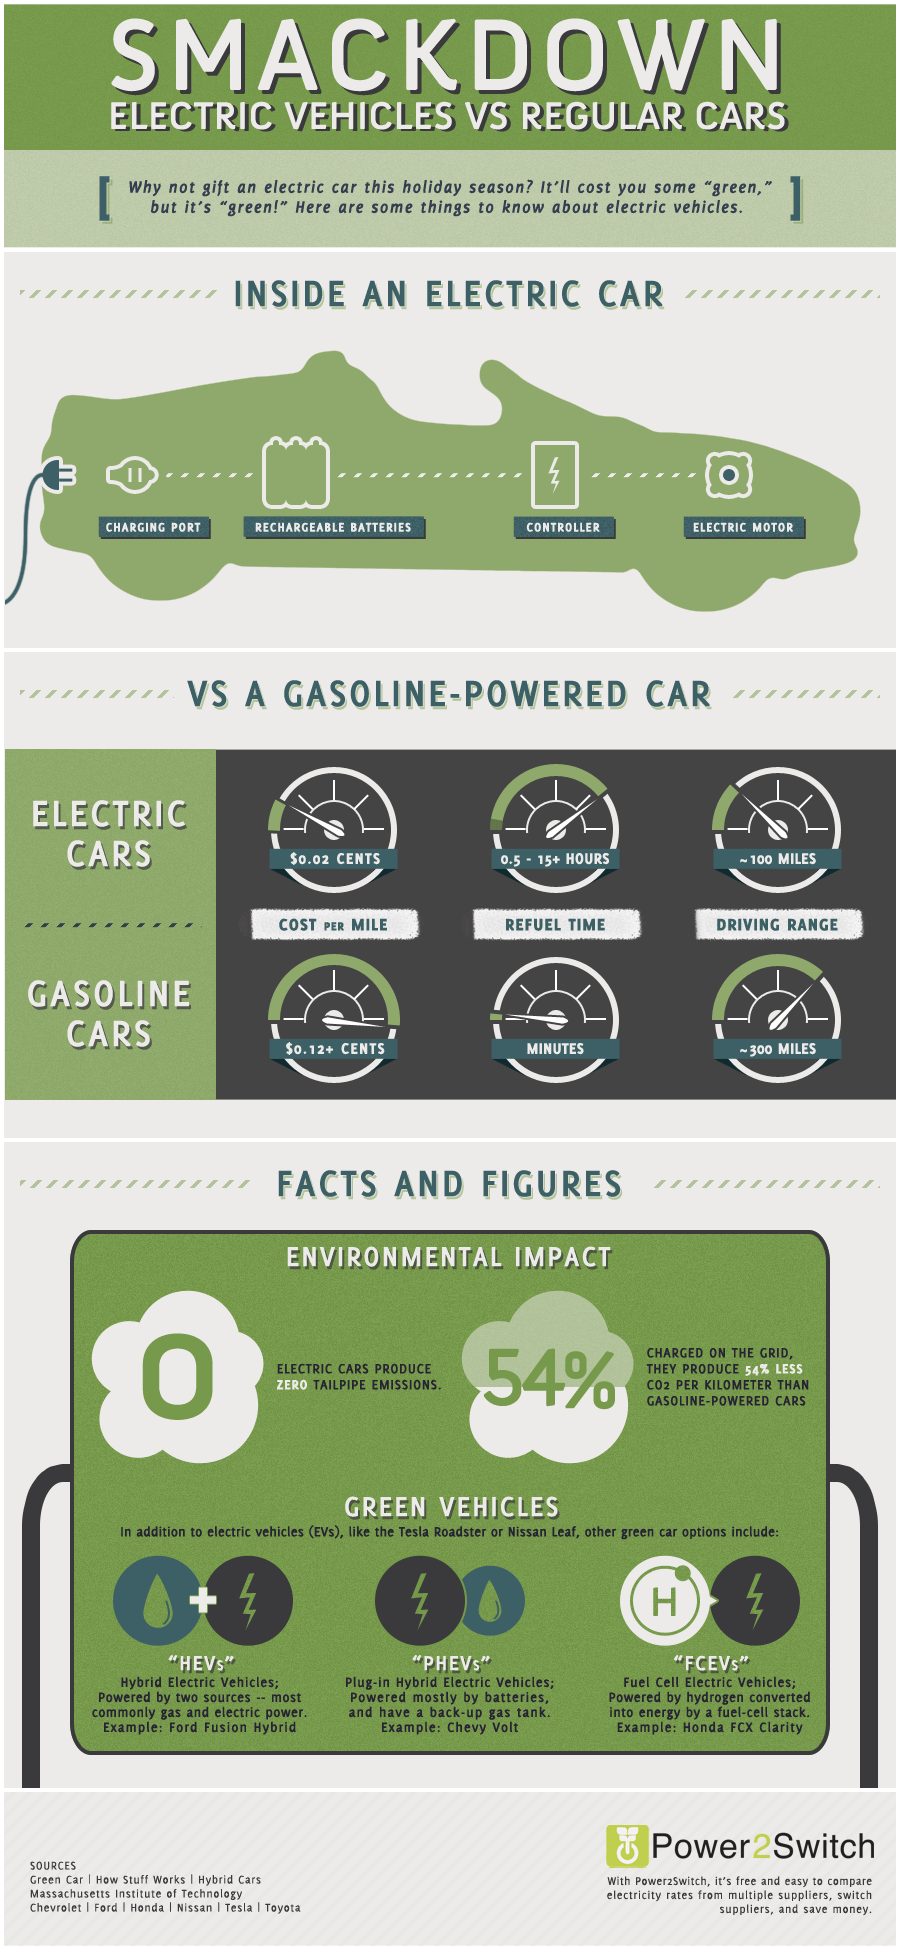 Let Op Environmental Impact Smackdown Electric Vehicles Vs